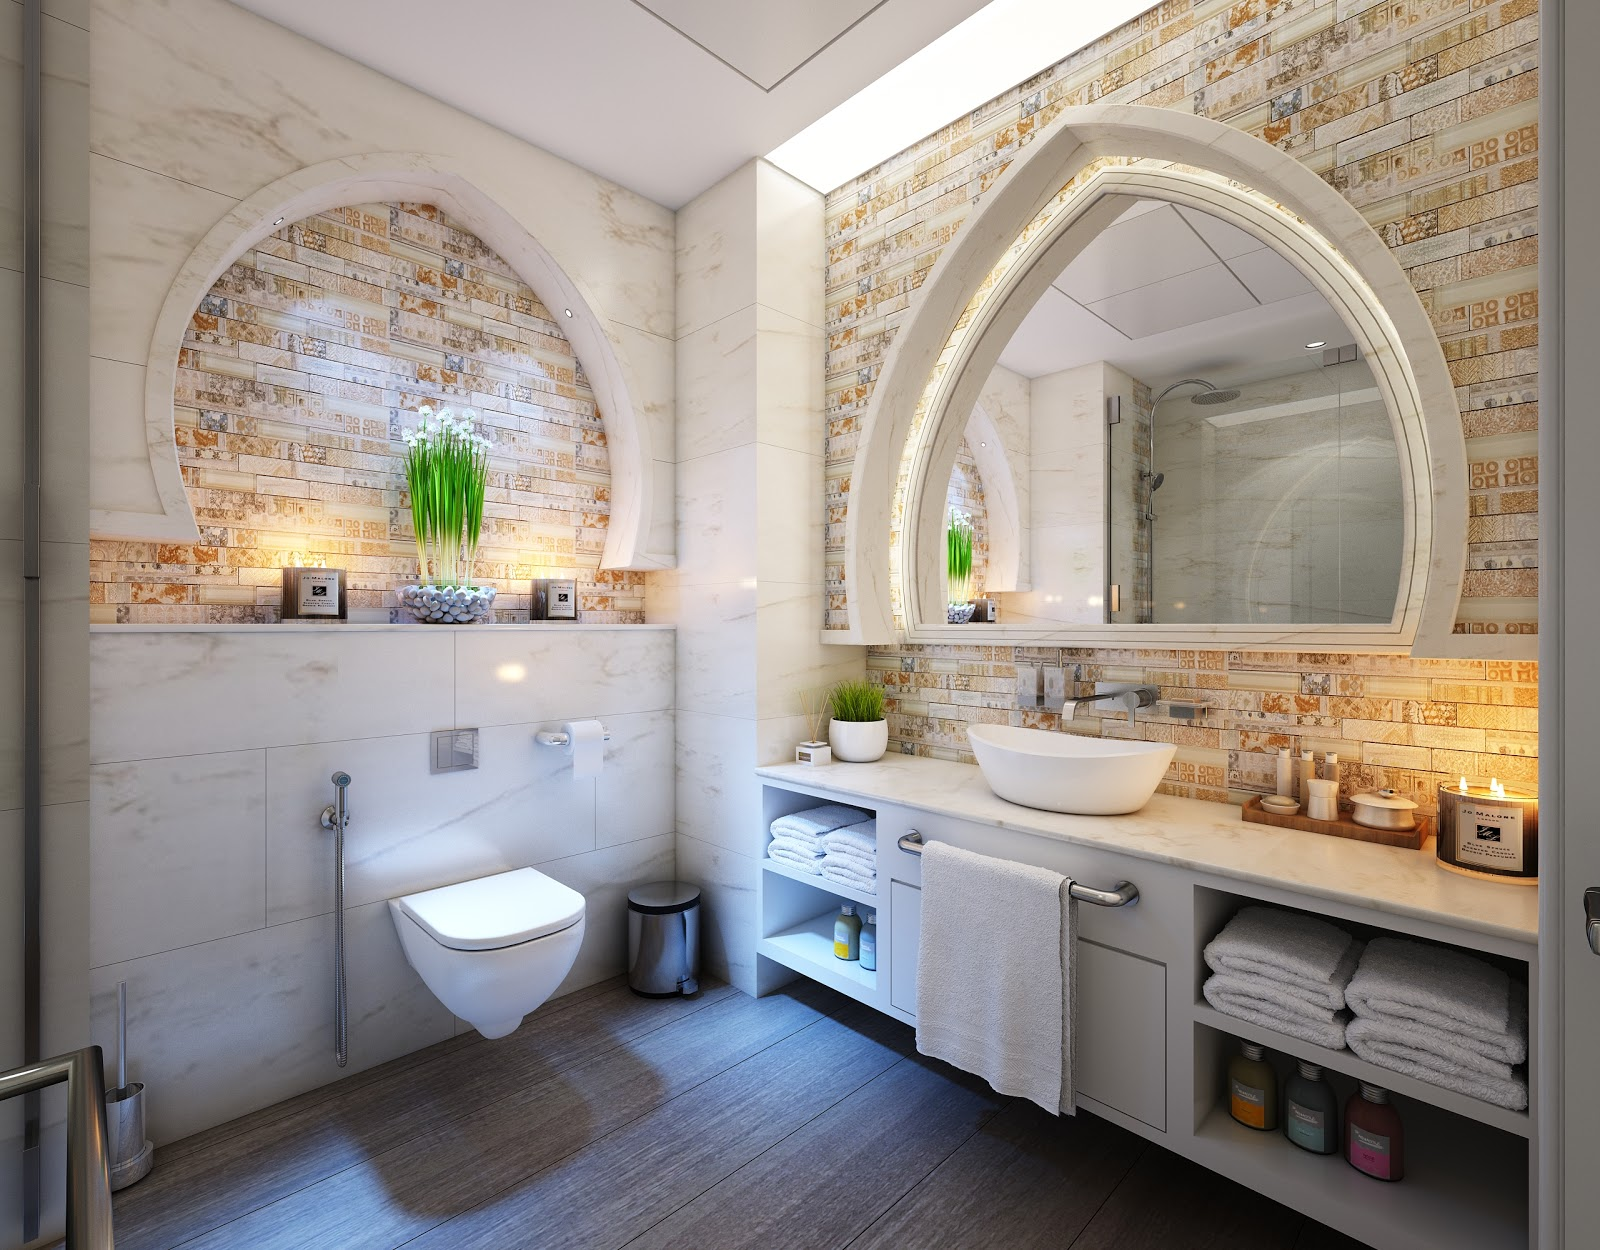 7 Simple Steps To Convert A Tub Into An Upscale Walk In Shower The